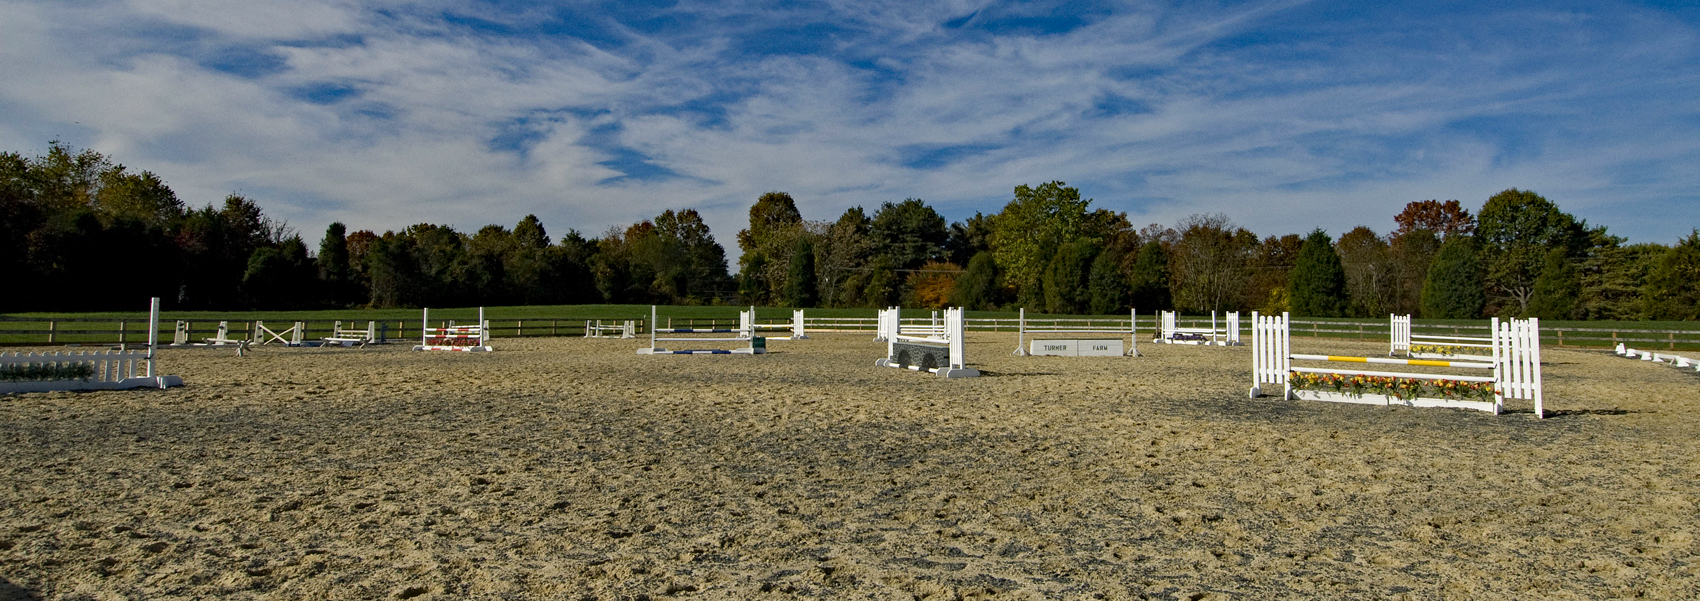 The riding ring with obstacles at Turner Farm